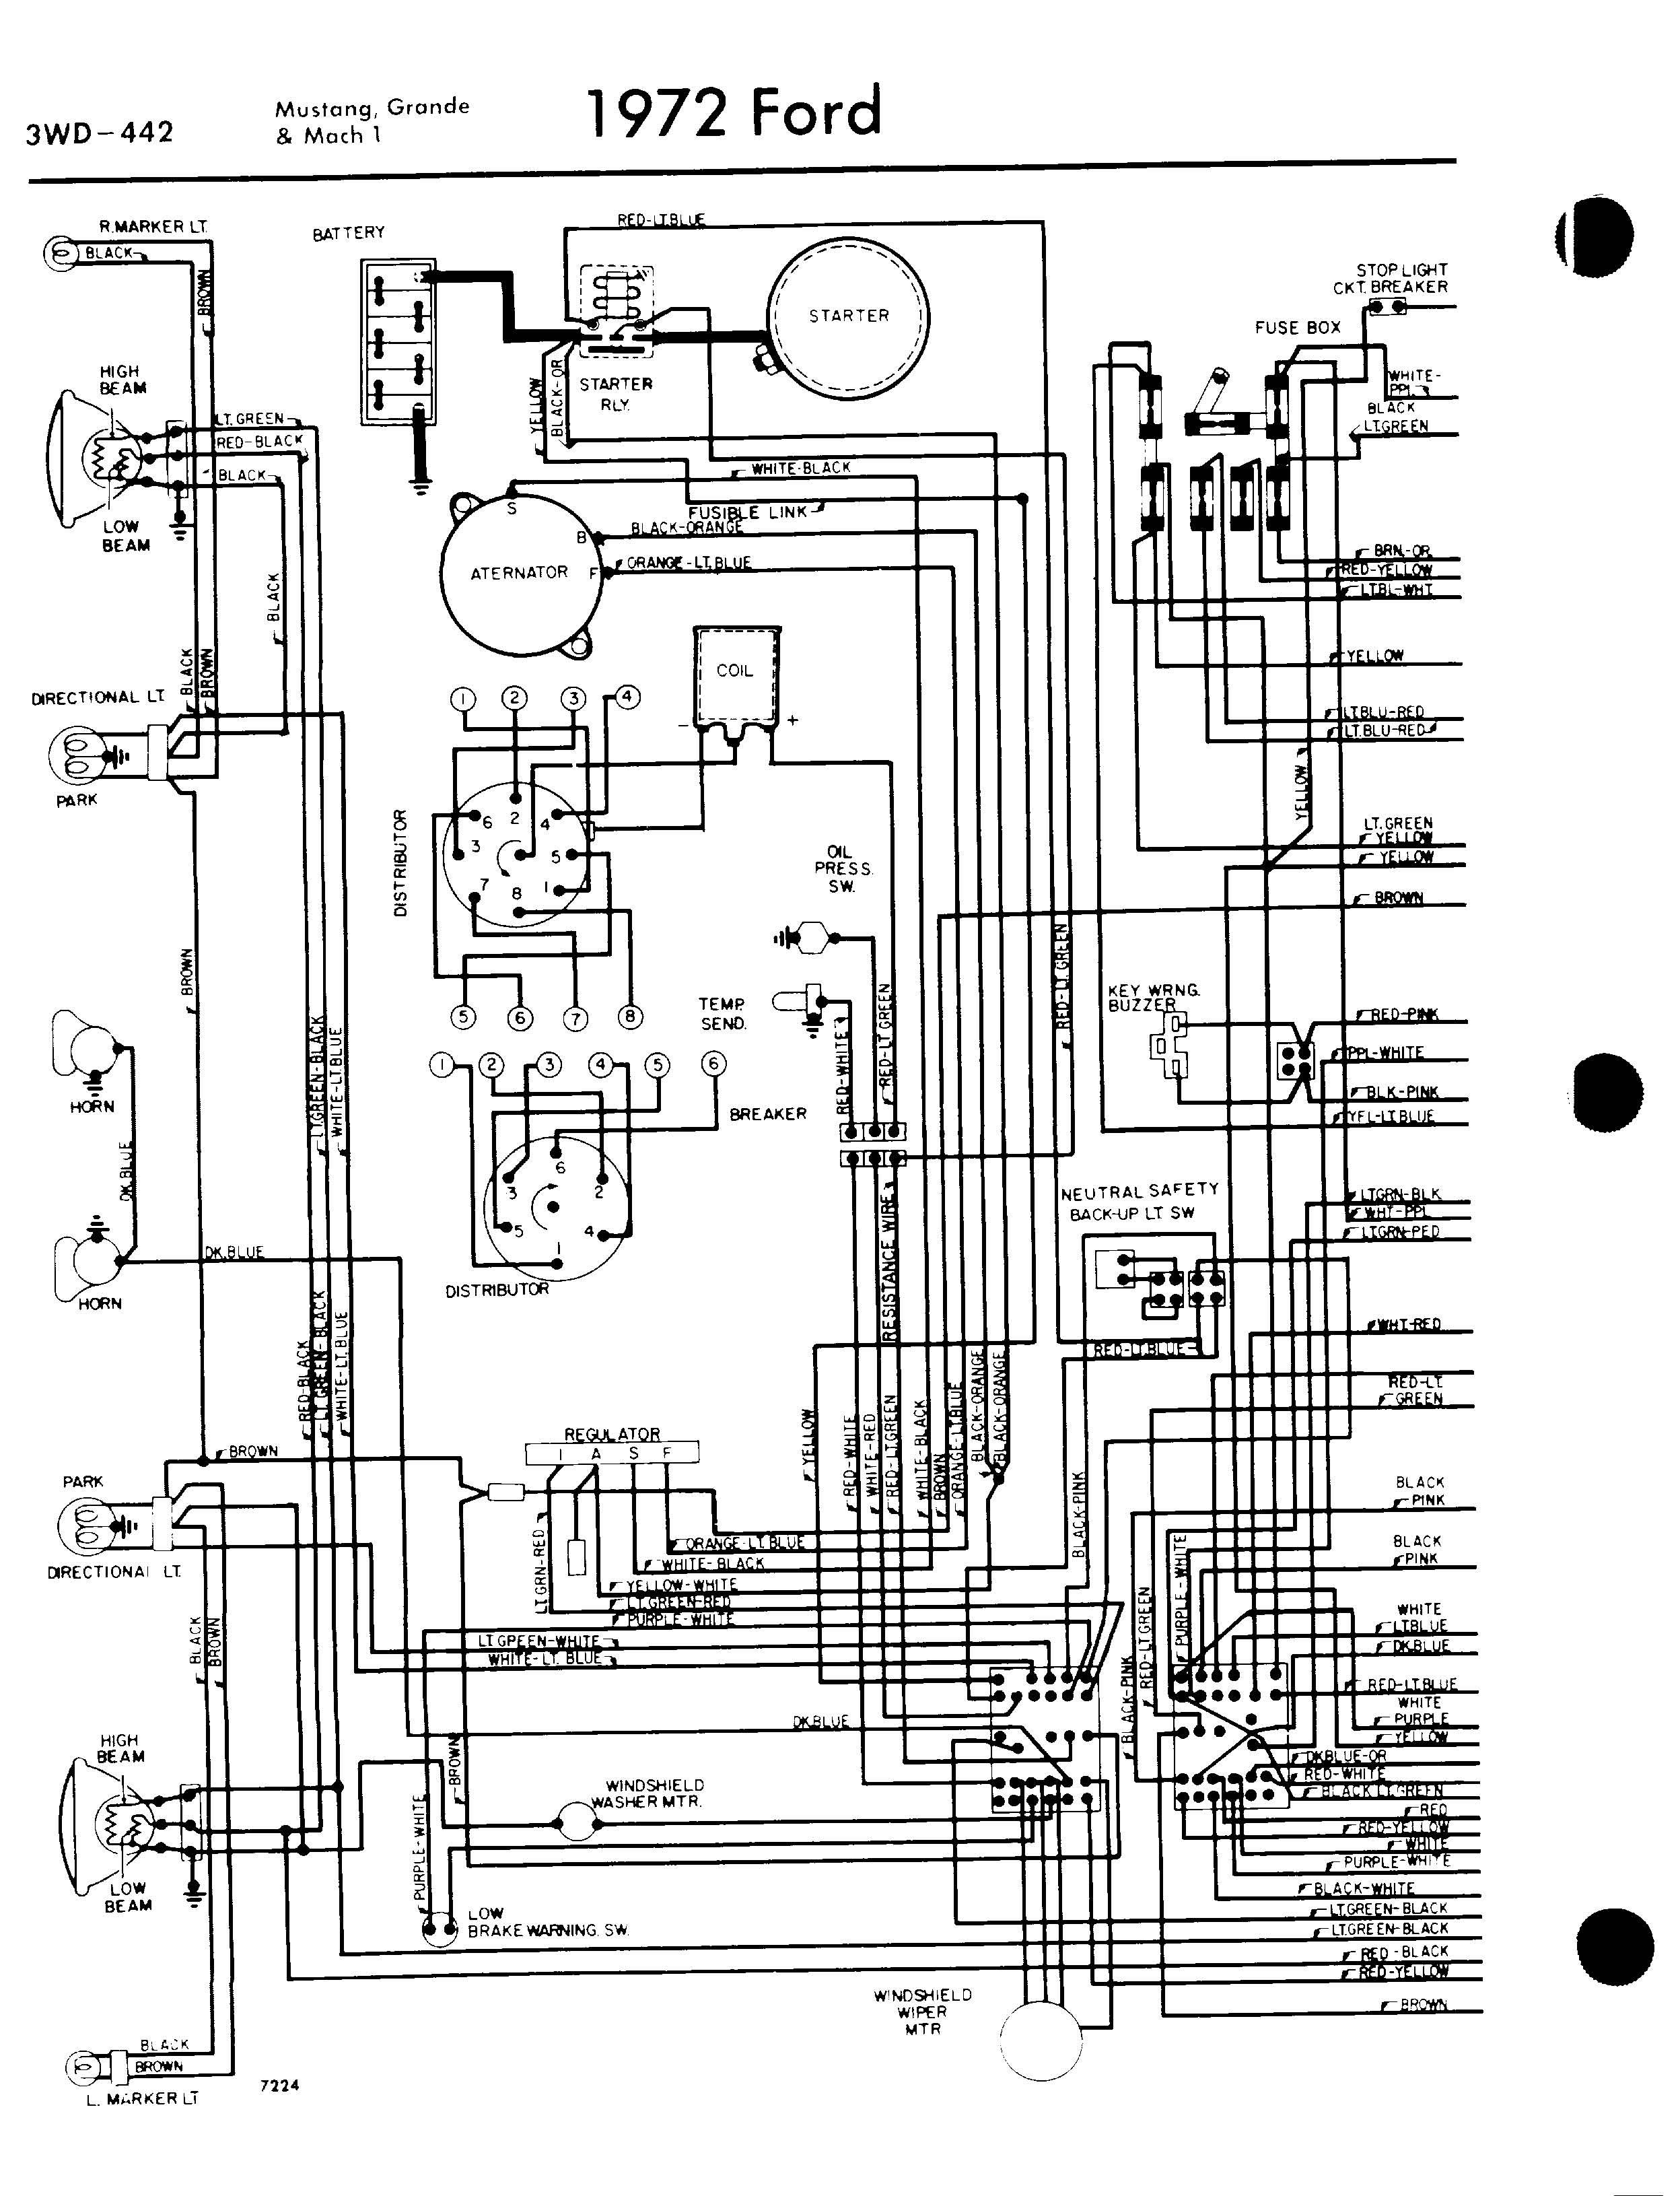 71af7a58e095e6a7716b32f1b23e8bd2 72 mach1 alternator wire harness diagram yahoo search results Ford Alternator Wiring Diagram at panicattacktreatment.co